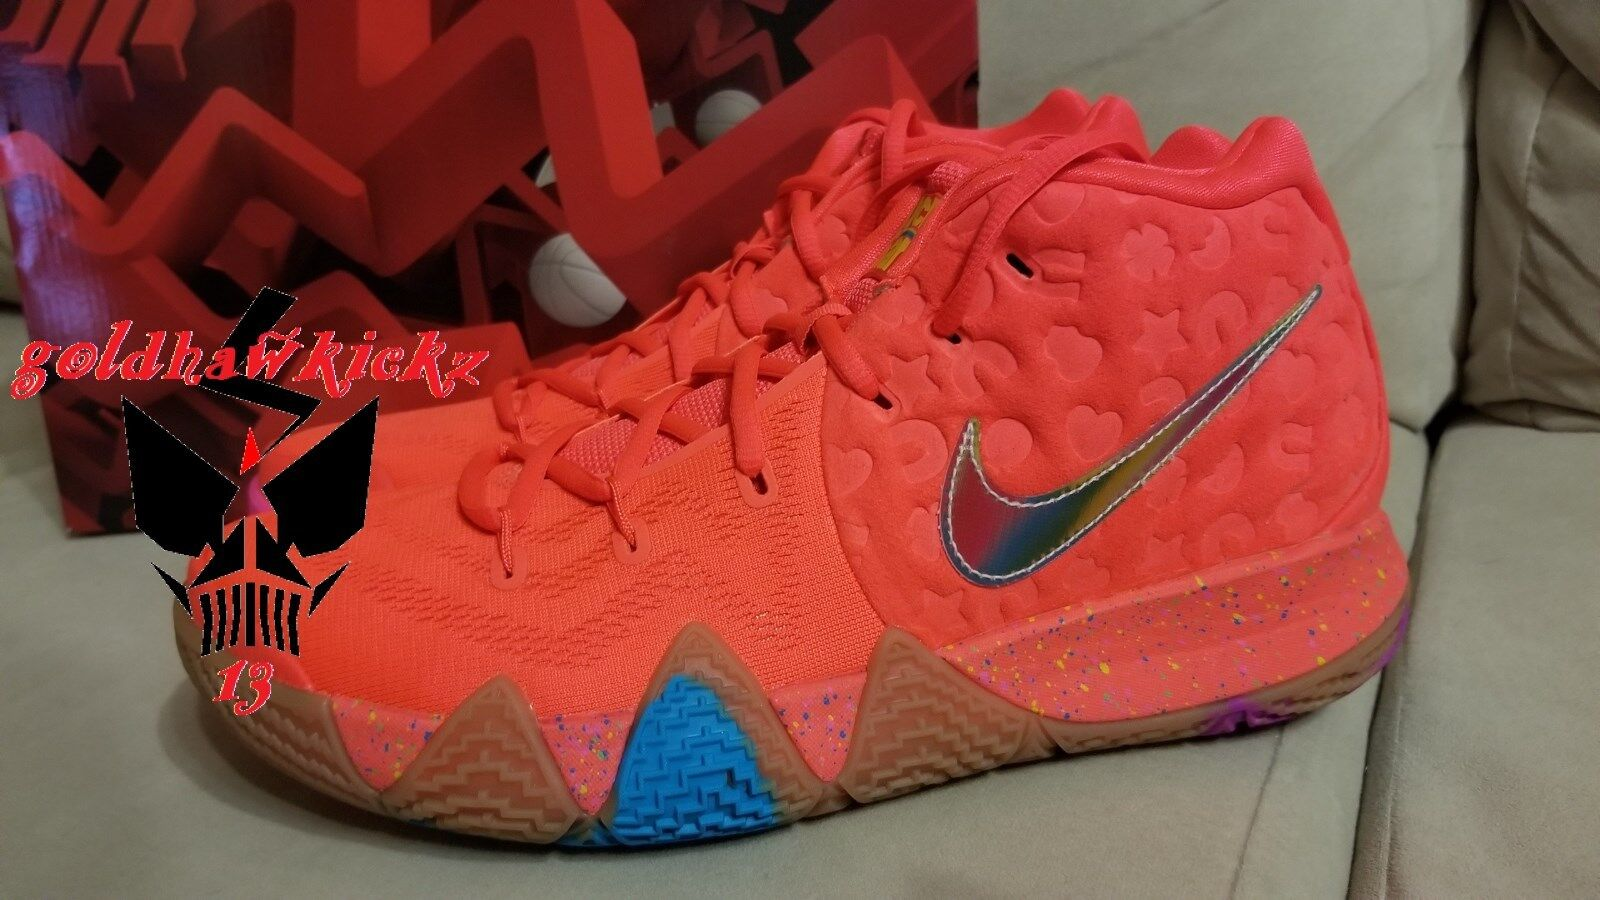 Nike BV0428 kyrie 4 lucky charms BV0428 Nike 600 bright crimson mc Cereal Pack irving 12c8dc